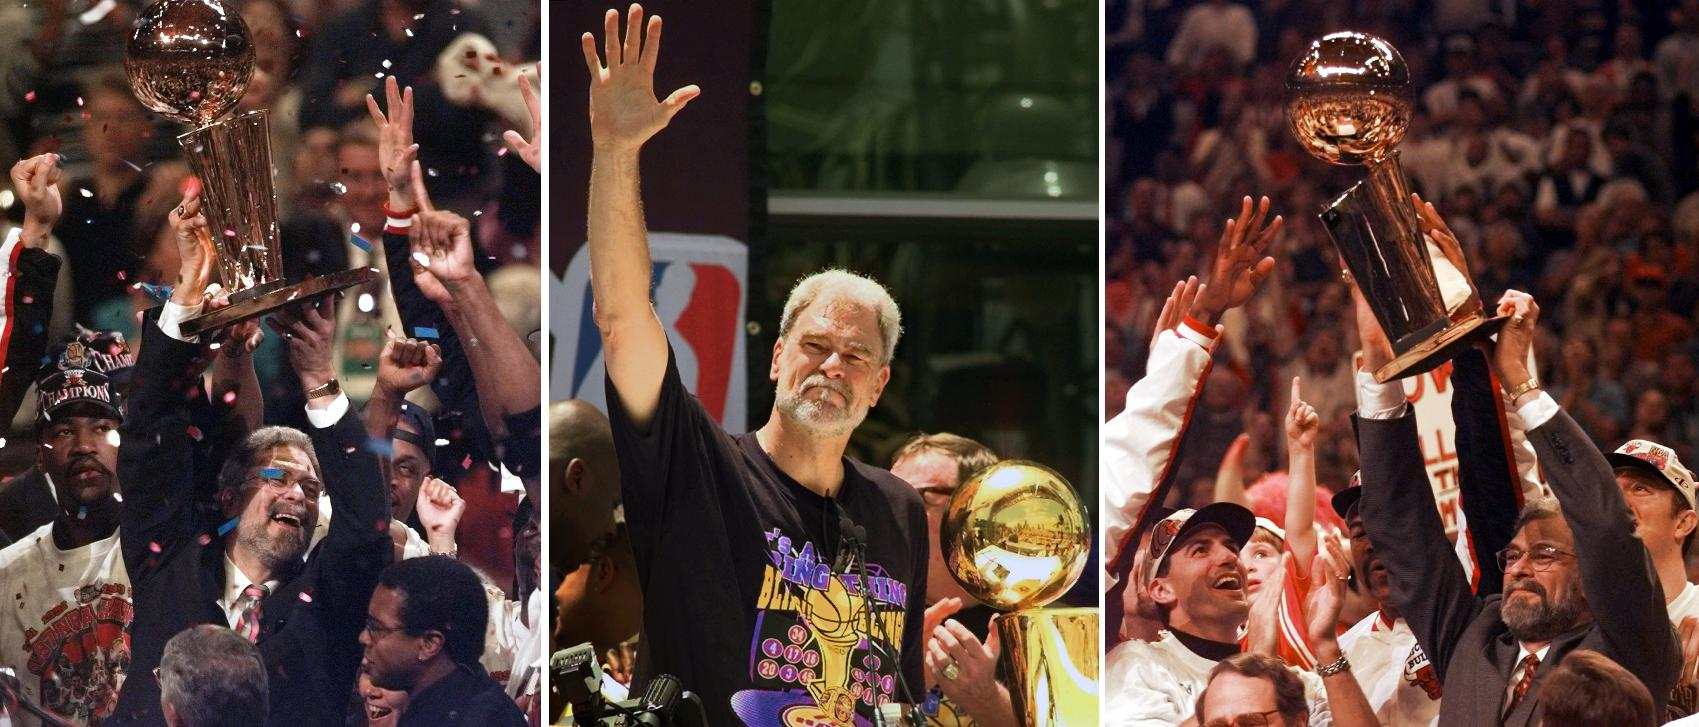 At left, in a  June 13, 1997, file photo, Chicago Bulls coach Phil Jackson hoists the NBA Championship trophy aloft after the Bulls beat the Utah Jazz 90-86 in Game 6 of the NBA Finals. in Chicago. At center, in a June 21, 2000 file photo, Los Angeles Lakers head coach Phil Jackson waves to the crowd as the Lakers and thousands of their fans celebrate their NBA Championship in downtown Los Angeles. At right, in a June 16, 1996 file photo, Chicago Bulls coach Phil Jackson hoists the NBA championship trophy after the Bulls beat Seattle in Game 6 of the NBA Finals in Chicago. Carmelo Anthony says he has heard that 11-time NBA champion coach Phil Jackson will be